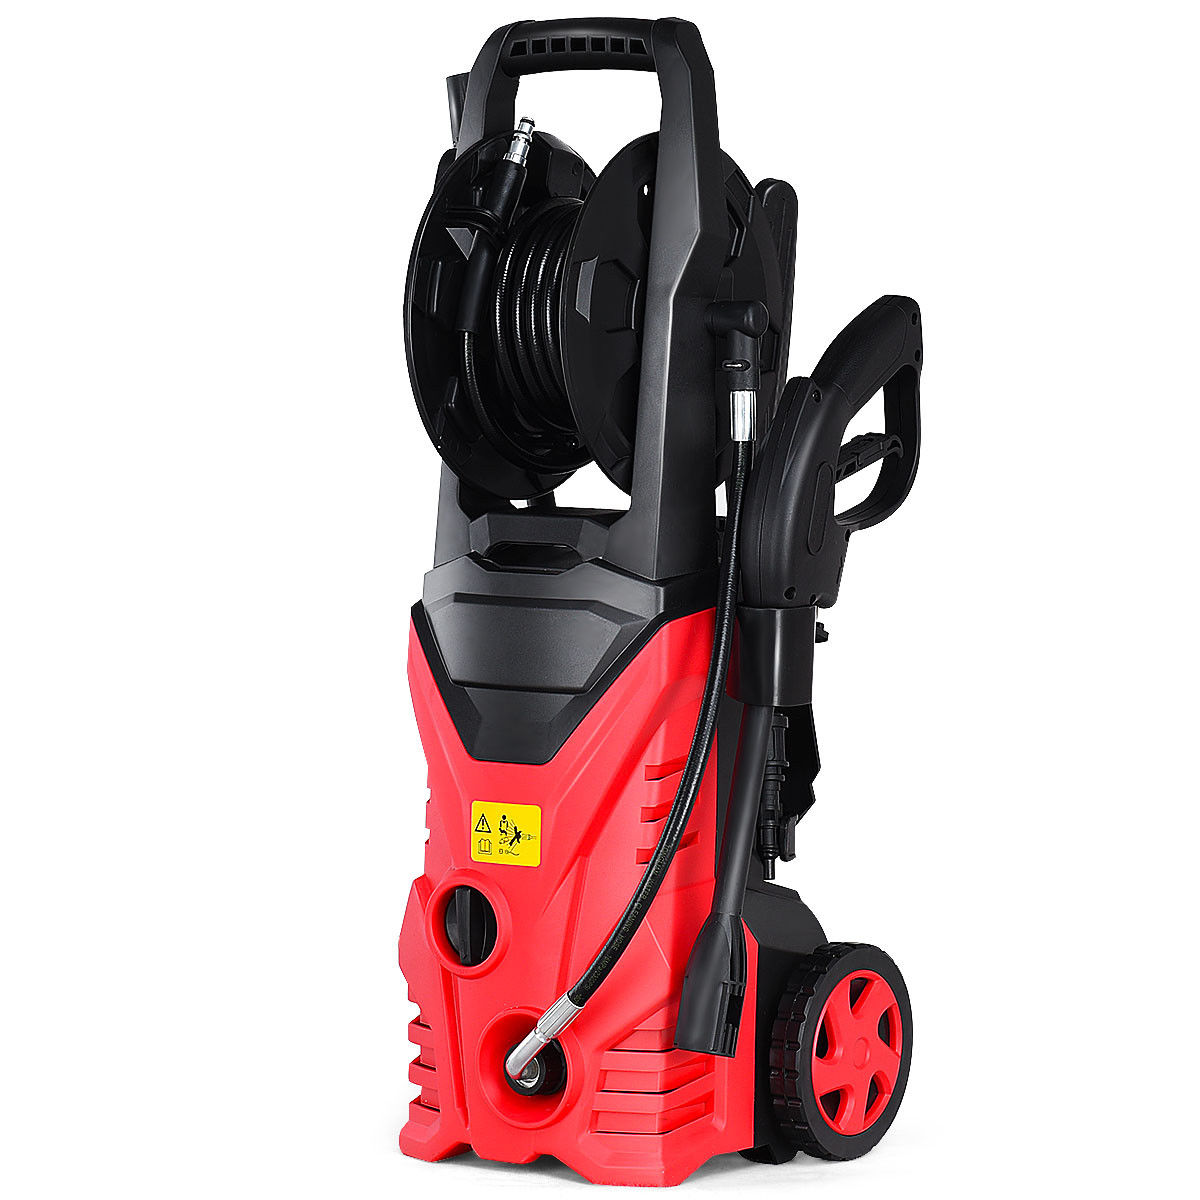 Costway 2030PSI Electric Pressure Washer Cleaner 1.7 GPM 1800W with Hose Reel Red by Costway